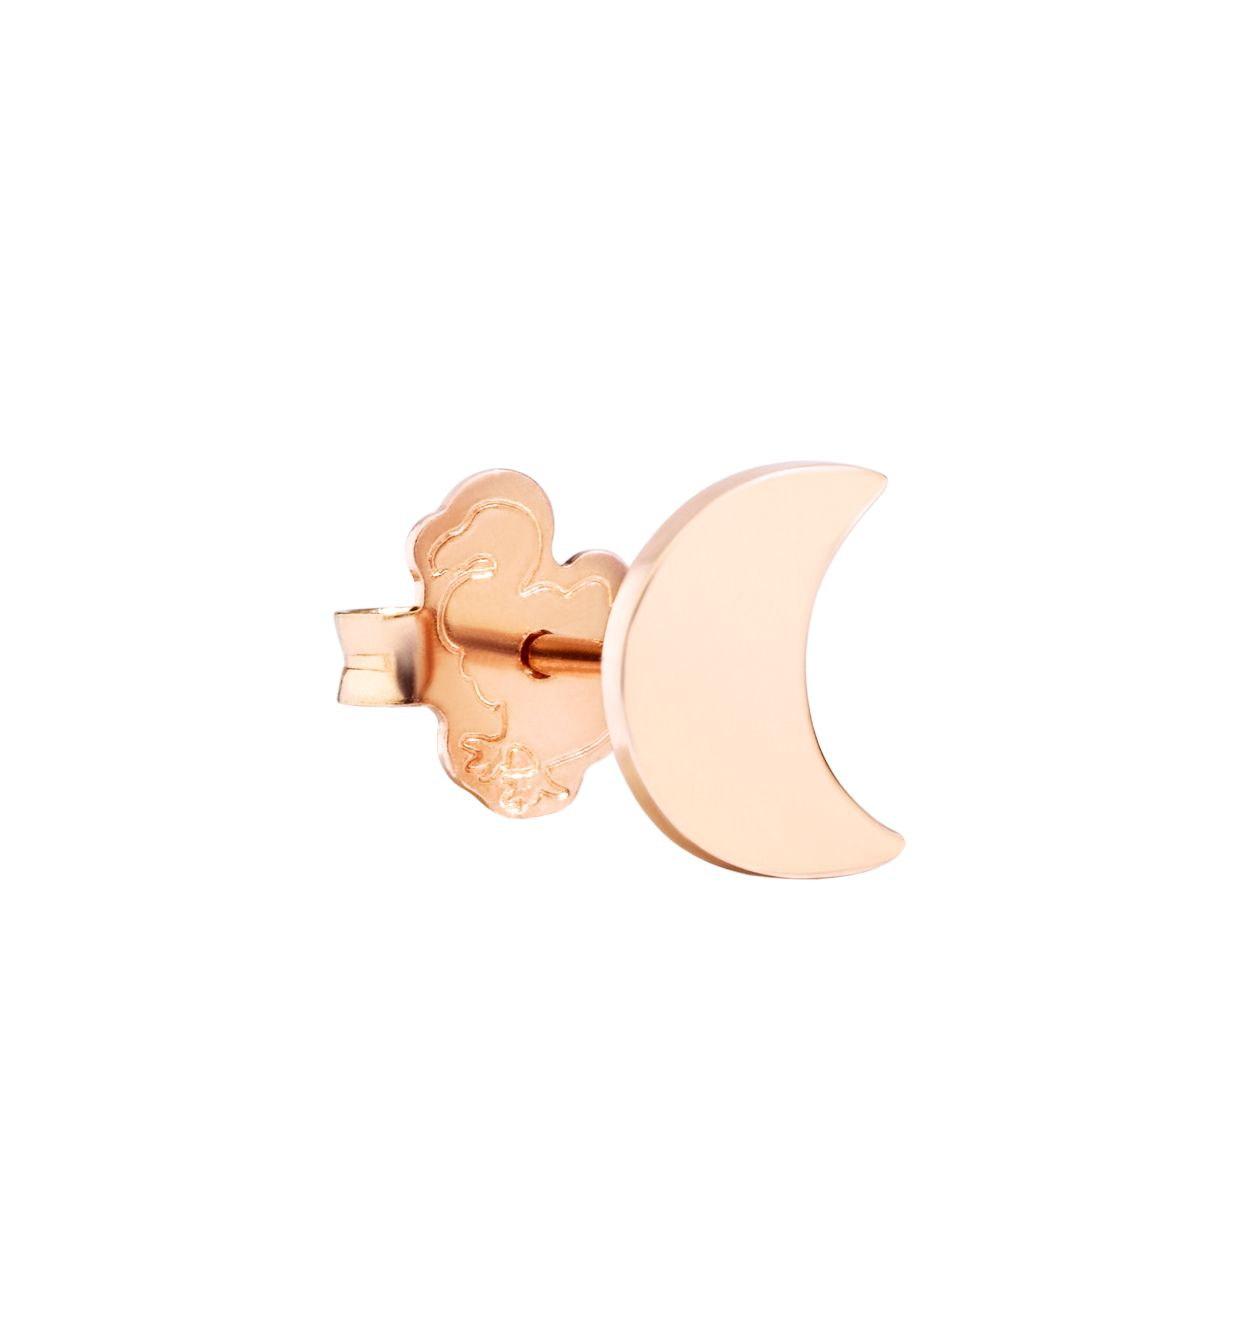 Dodo Moon Earrings in 9k Rose Gold